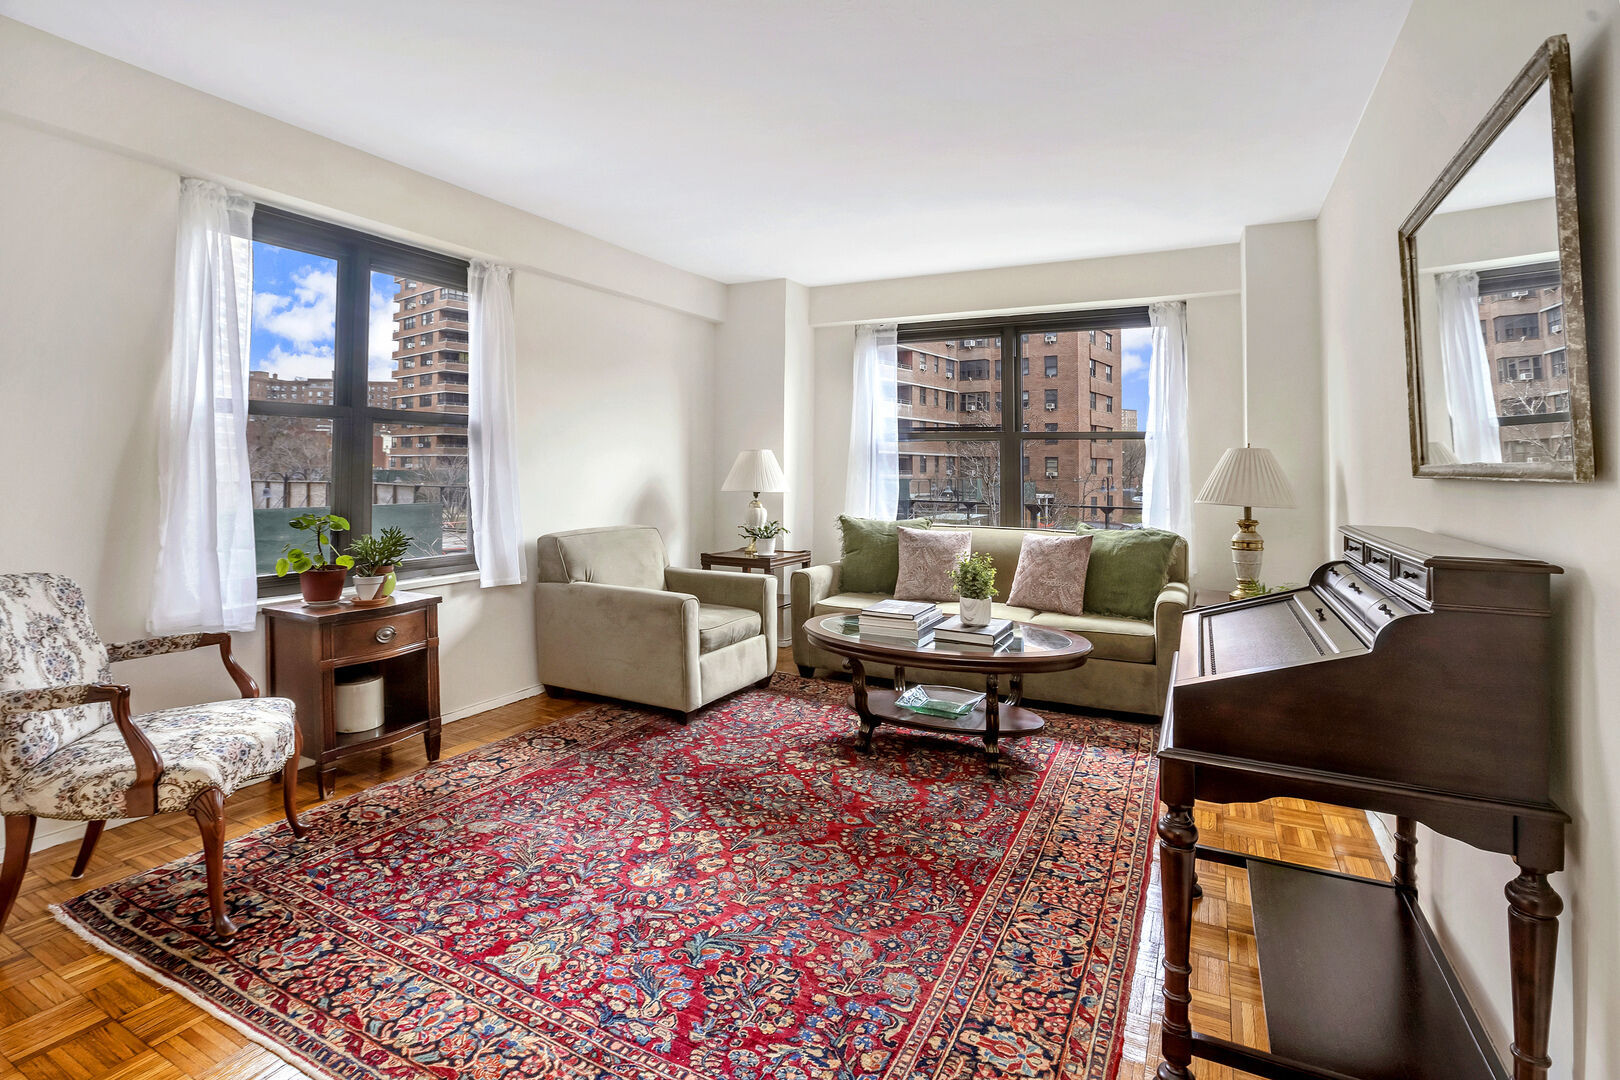 Apartment for sale at 415 Grand Street, Apt E-103